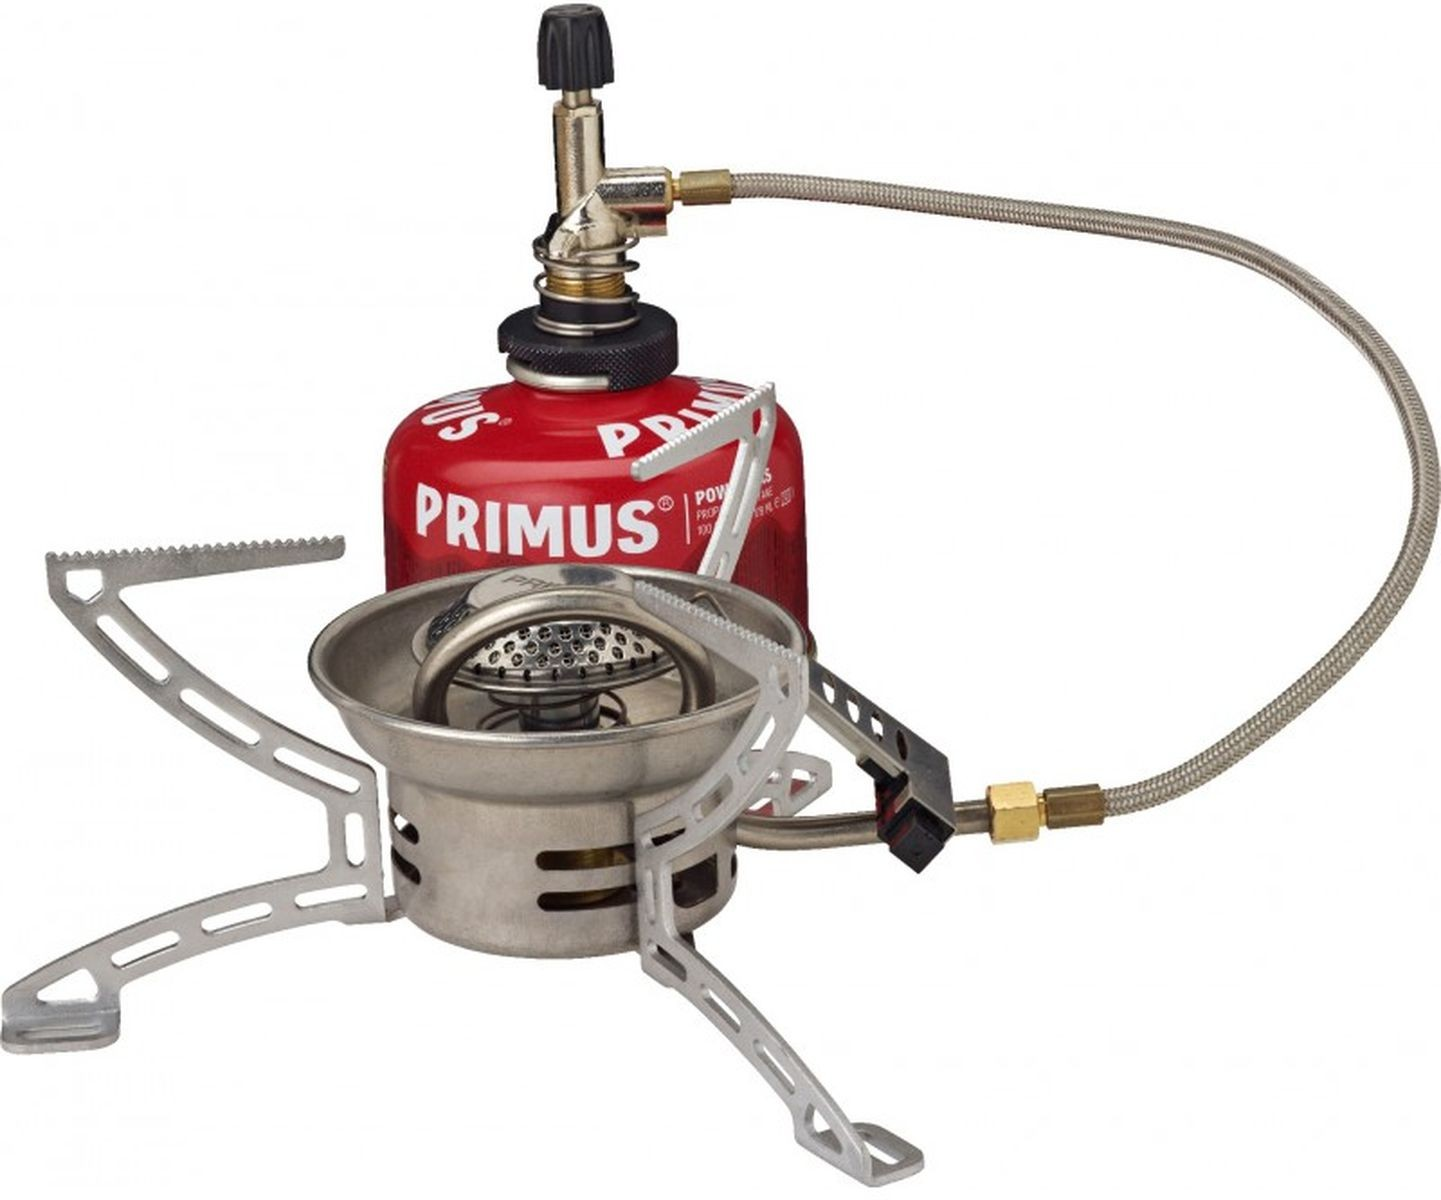 Primus Easy Fuel Duo – with piezo ignition